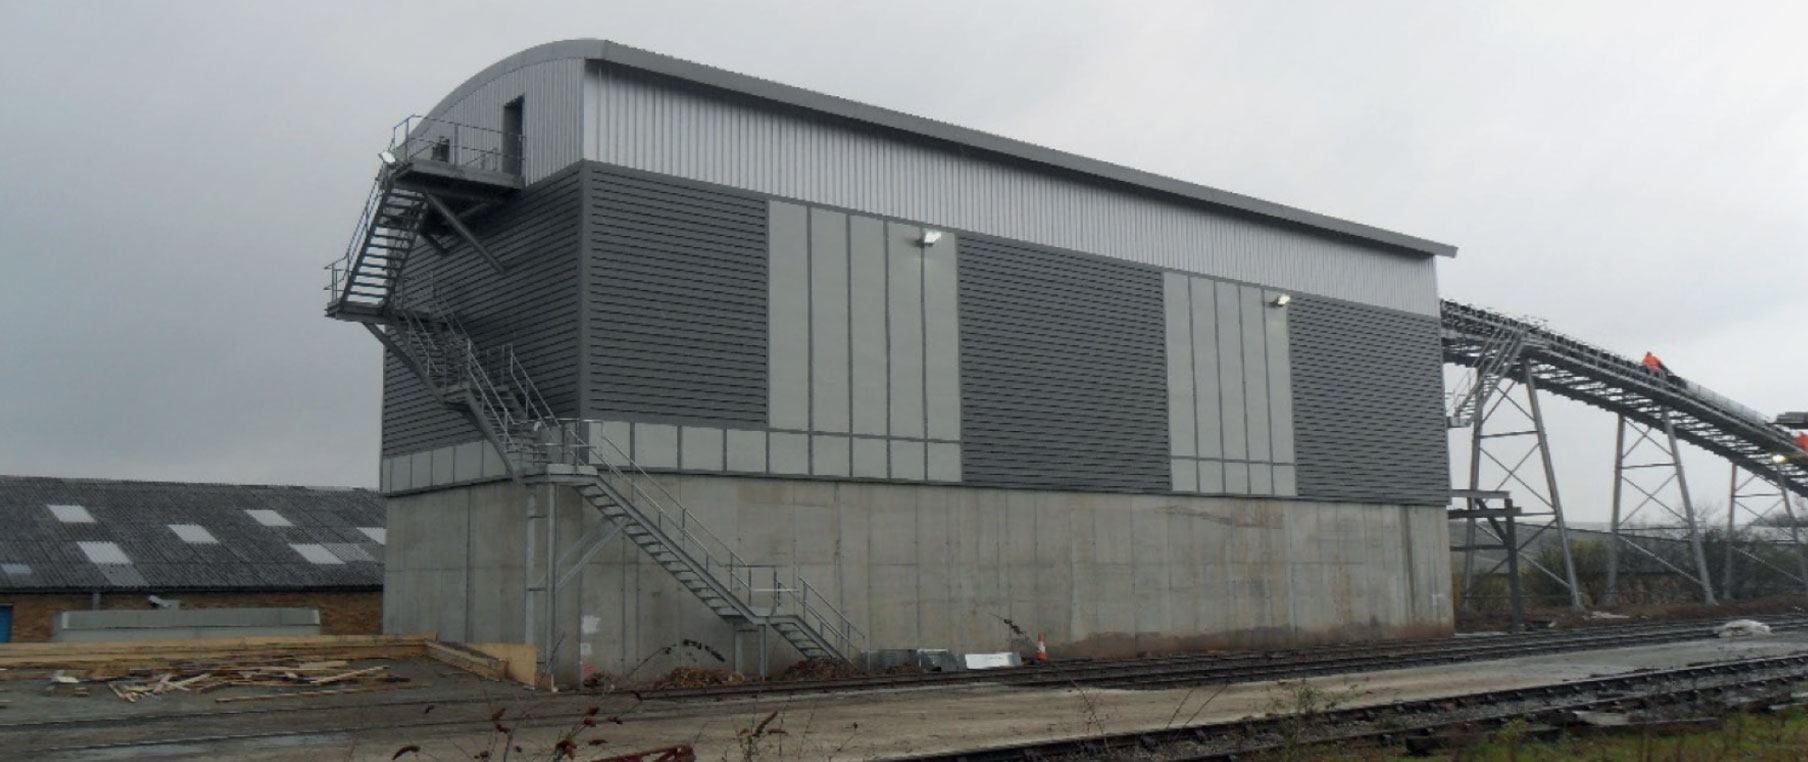 Cladding an existing system